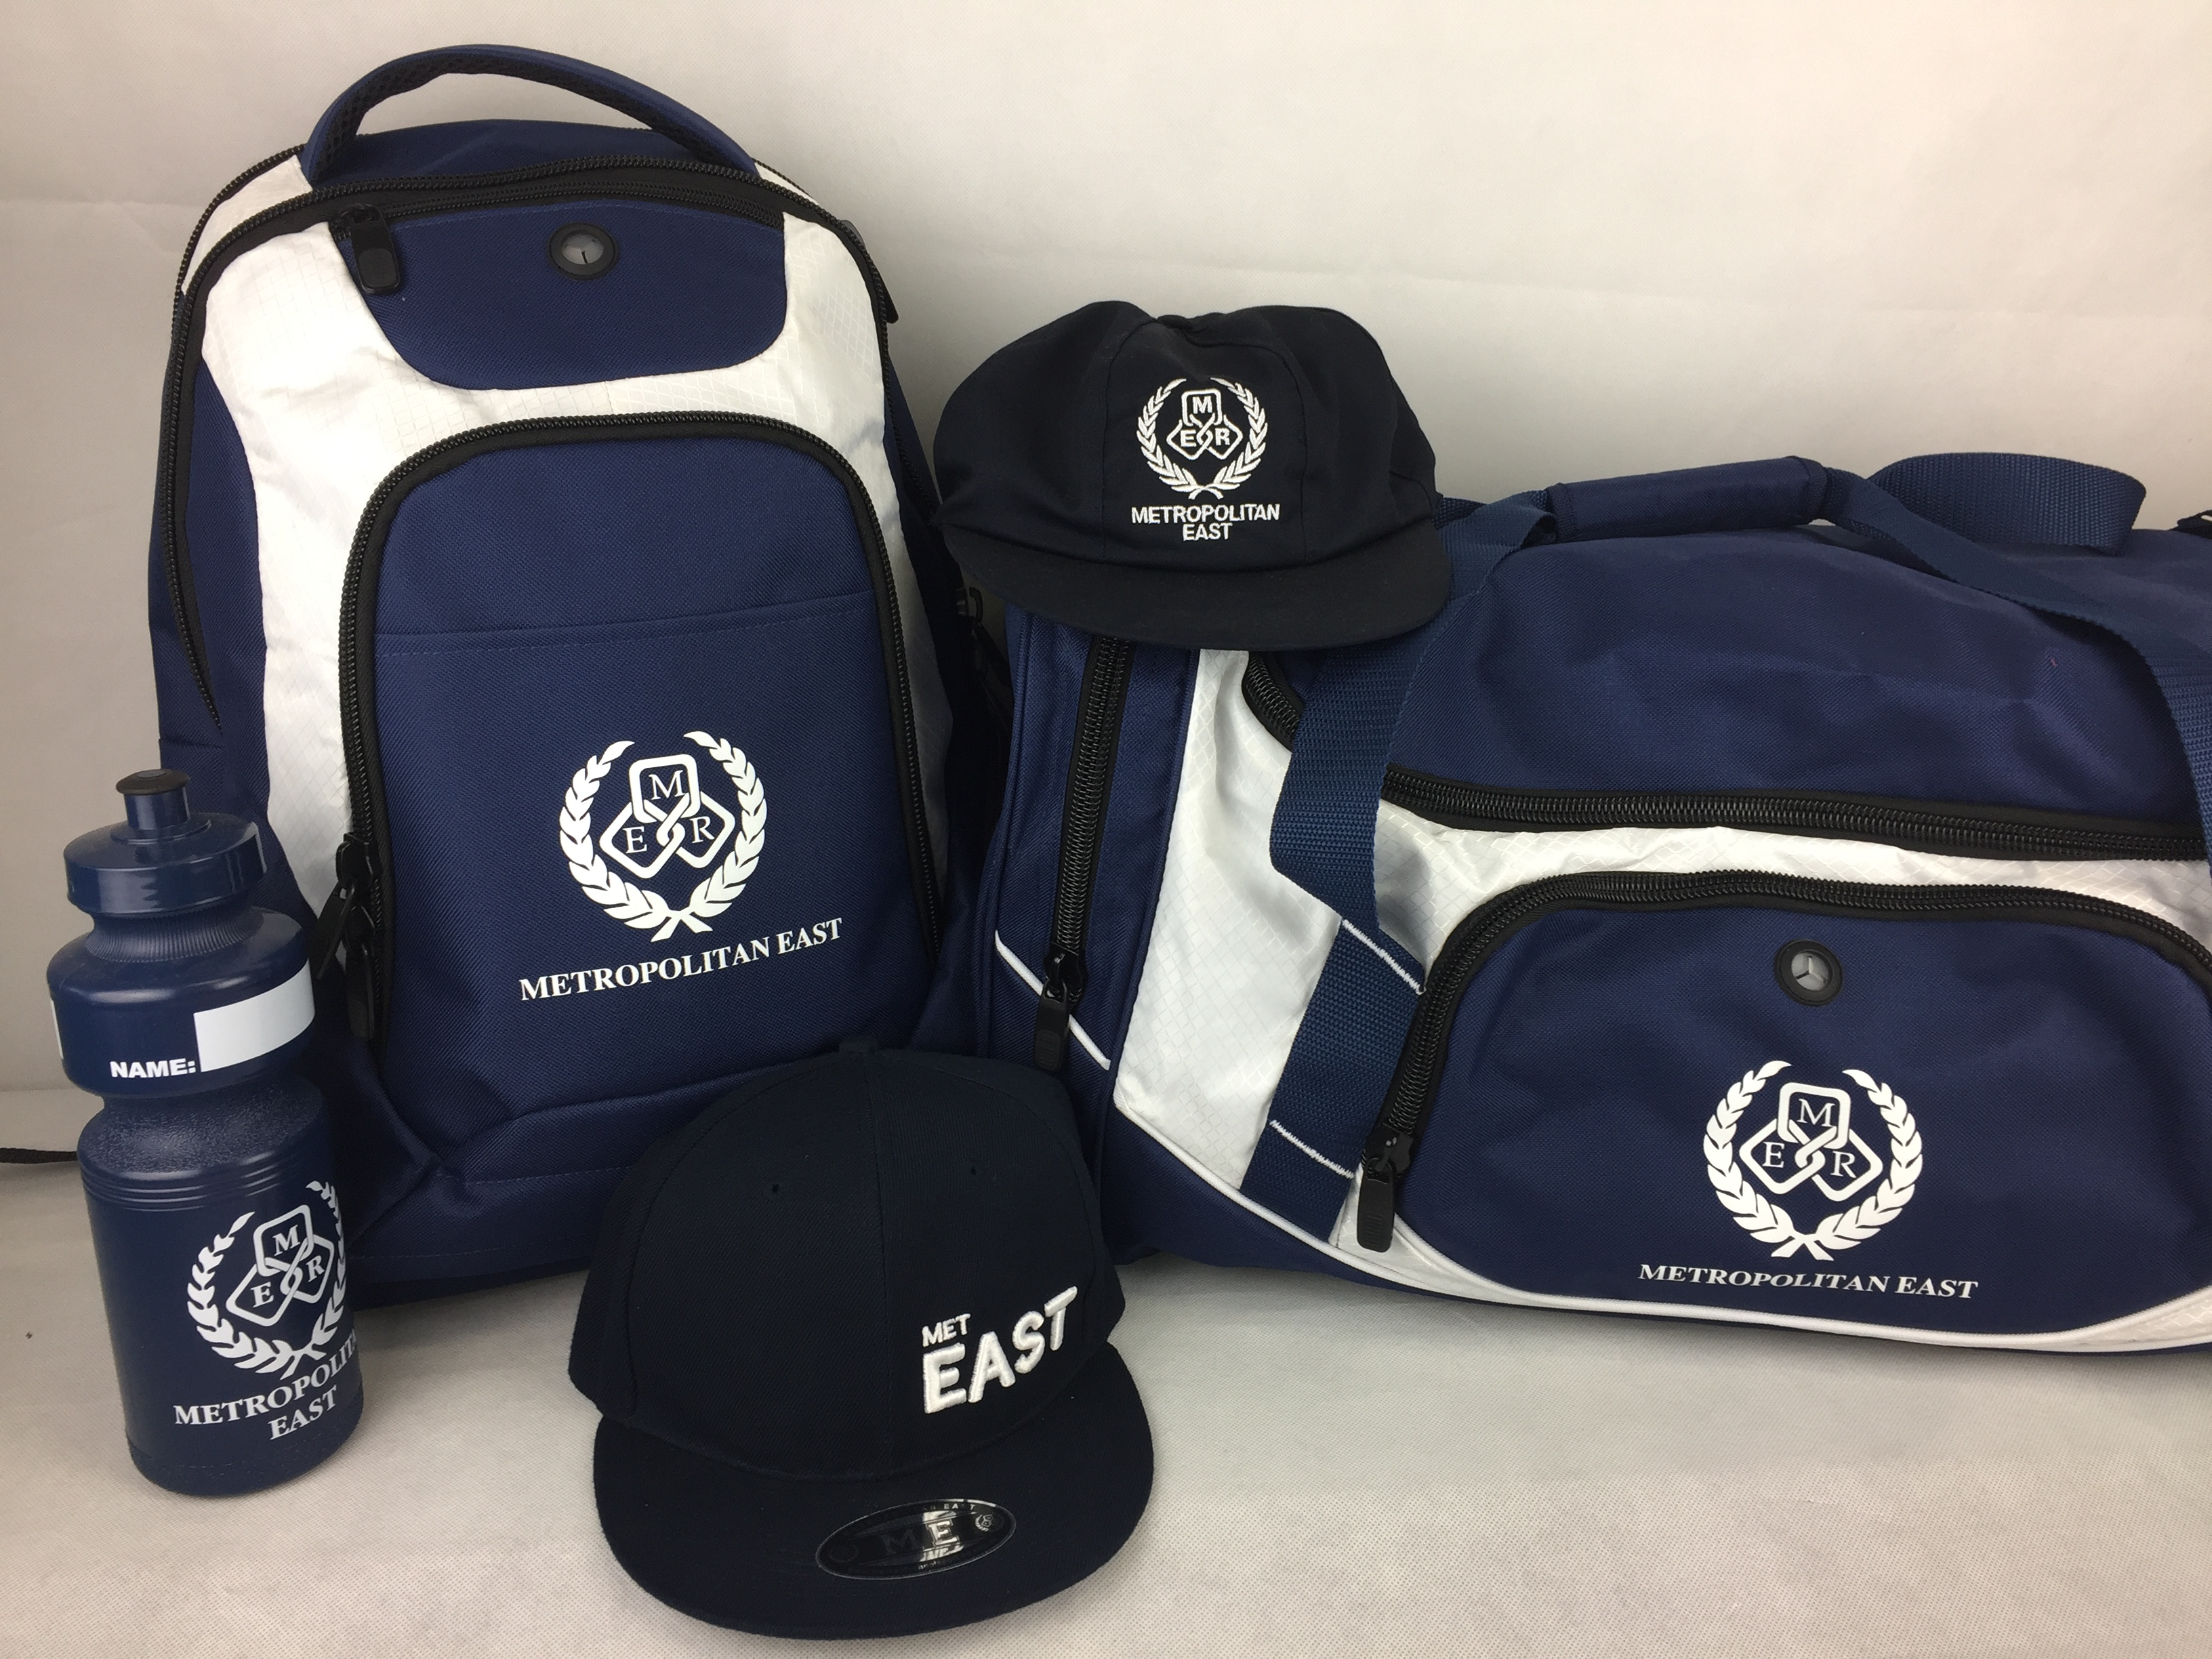 Bags and Caps